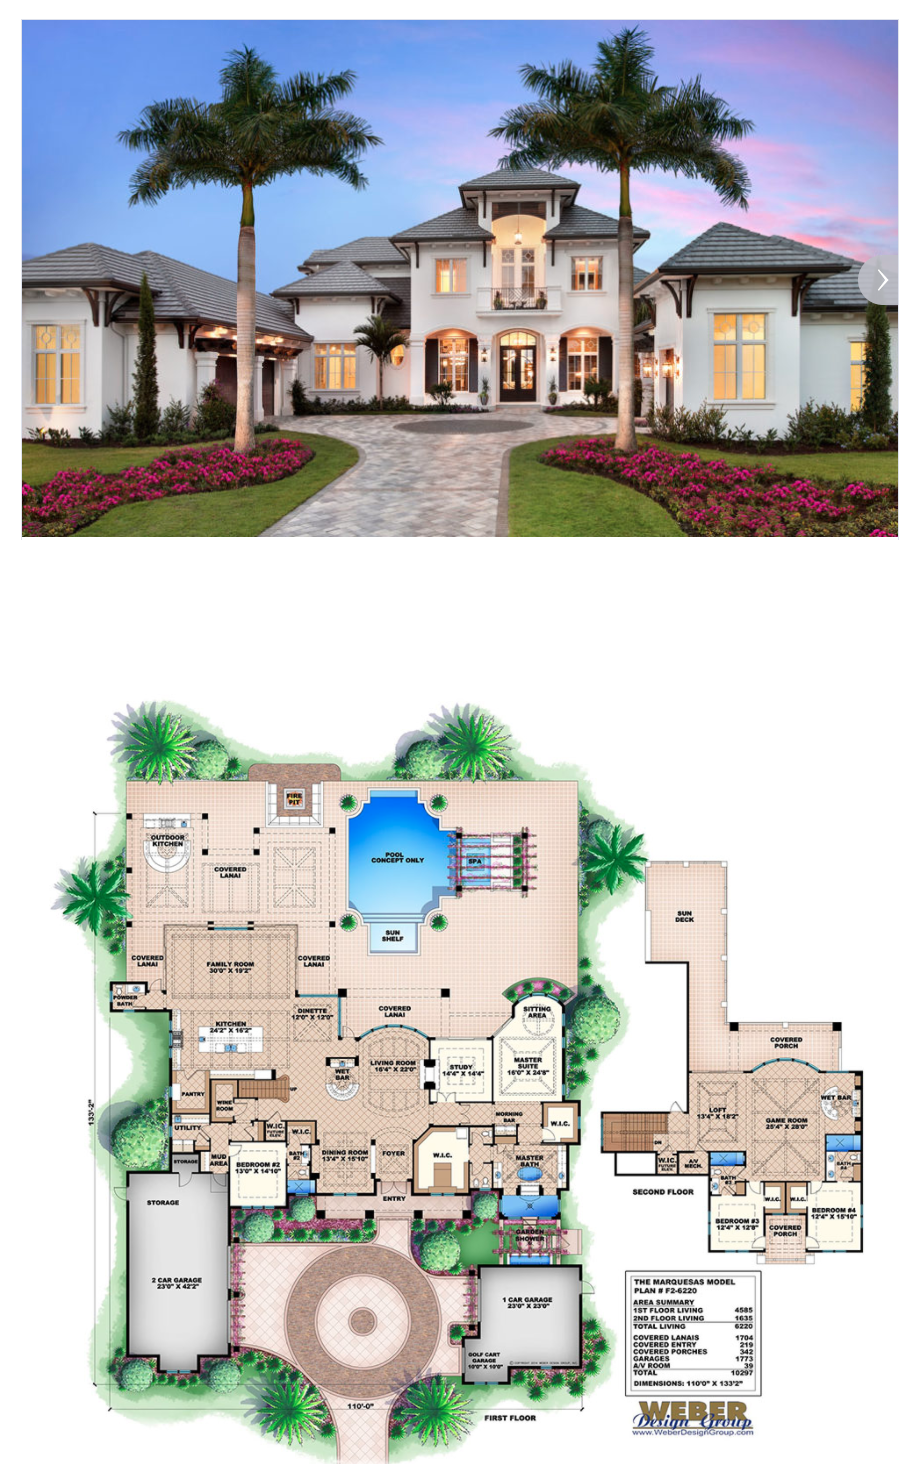 Beach House Plans With Pools on hillside house plans with pool, italian house plans with pool, 1500 square feet house plans with pool, barn house plans with pool, southern house plans with pool, garage plans with pool, craftsman house plans with pool, 4 bedroom house plans with pool, coastal house plans with pool, one story house plans with pool, cape cod house plans with pool, bathroom house plans with pool, spanish style house plans with pool, 3 bedroom house plans with pool, cottage house plans with pool, rustic house plans with pool, small house plans with pool, narrow lot house plans with pool, ranch house plans with pool, beach house plans waterfront,